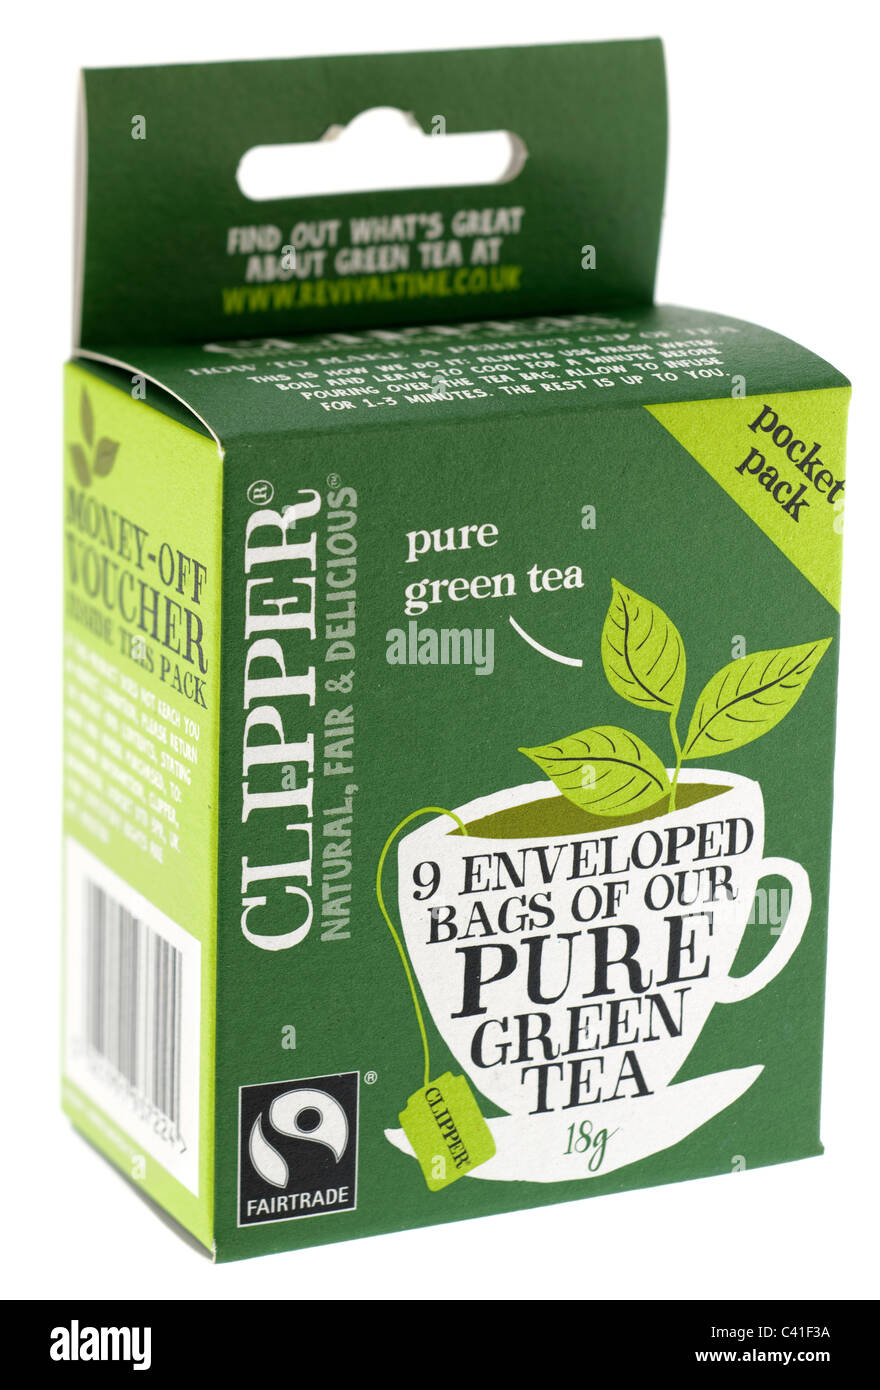 Box of Clipper fairtrade pocket size pack of 9 enveloped bags of pure green tea - Stock Image